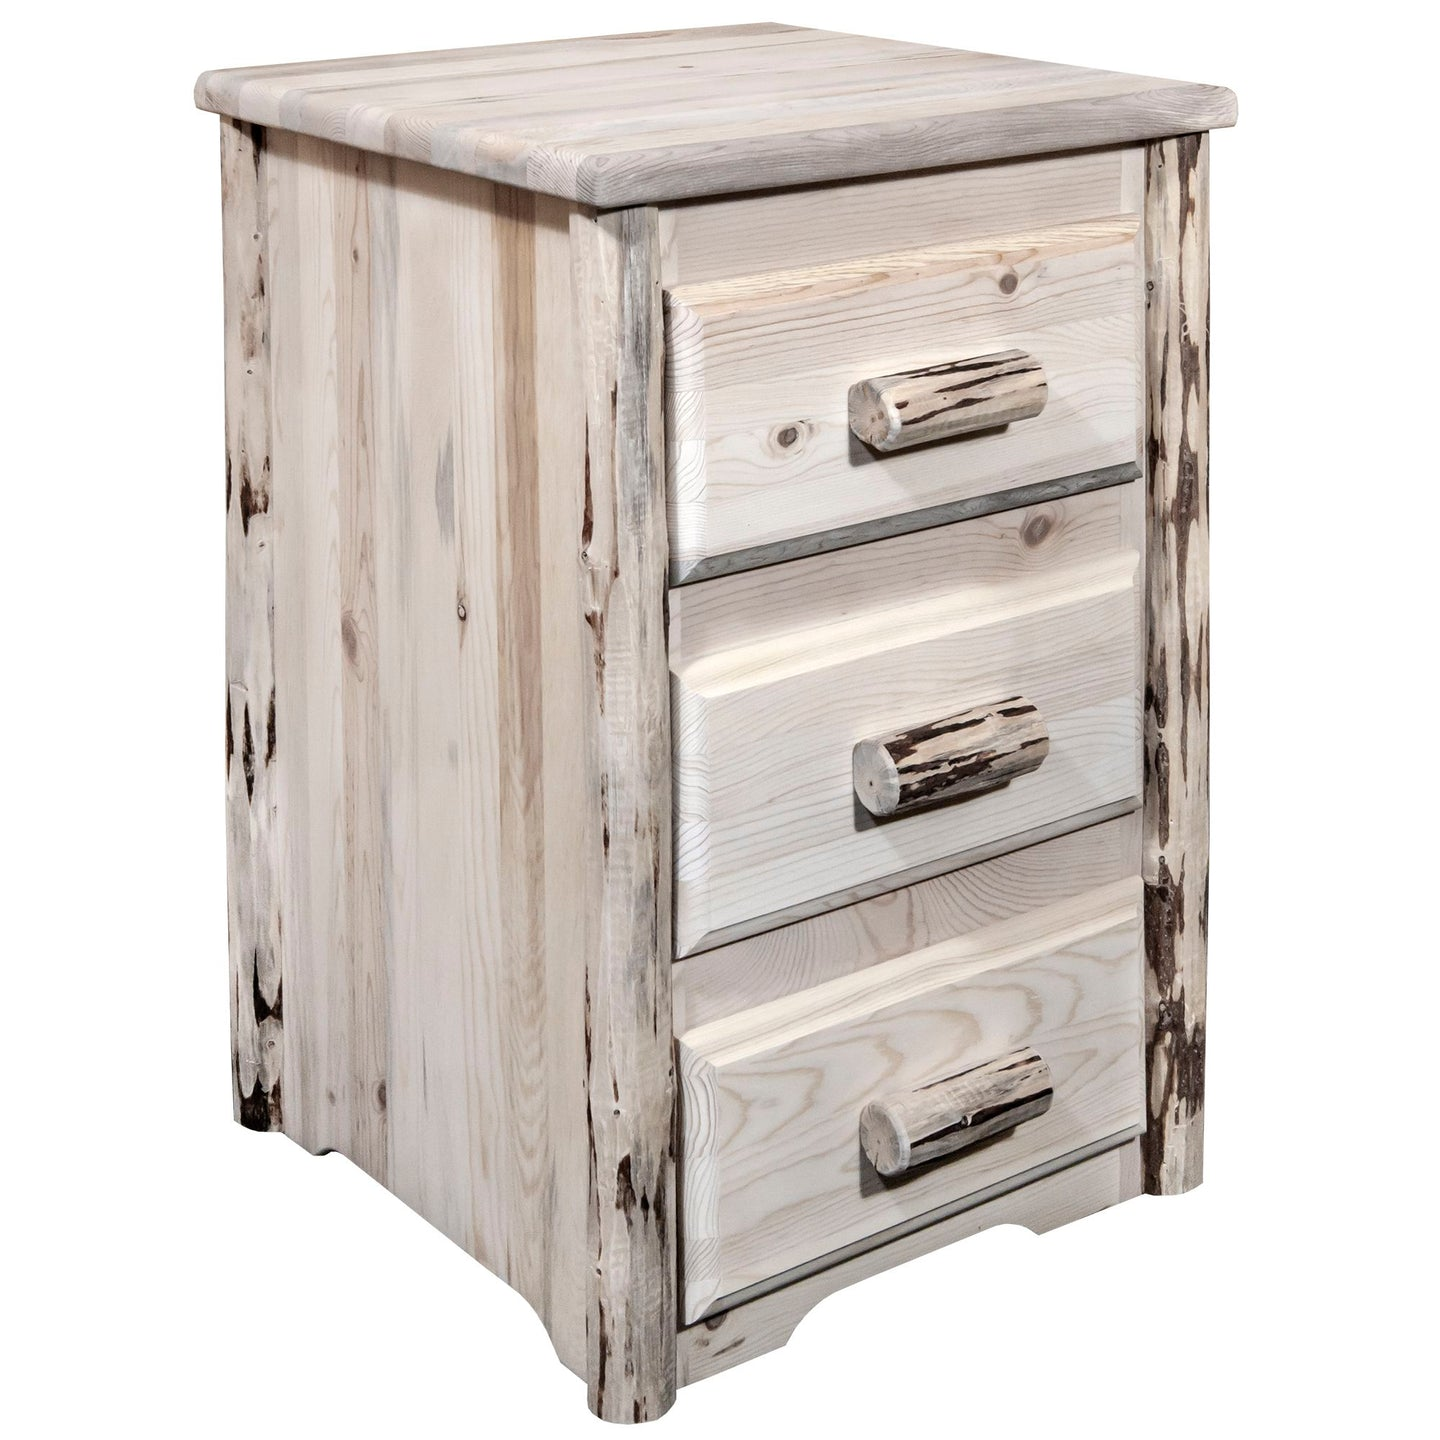 Montana Rustic Nightstand with 3 Drawers